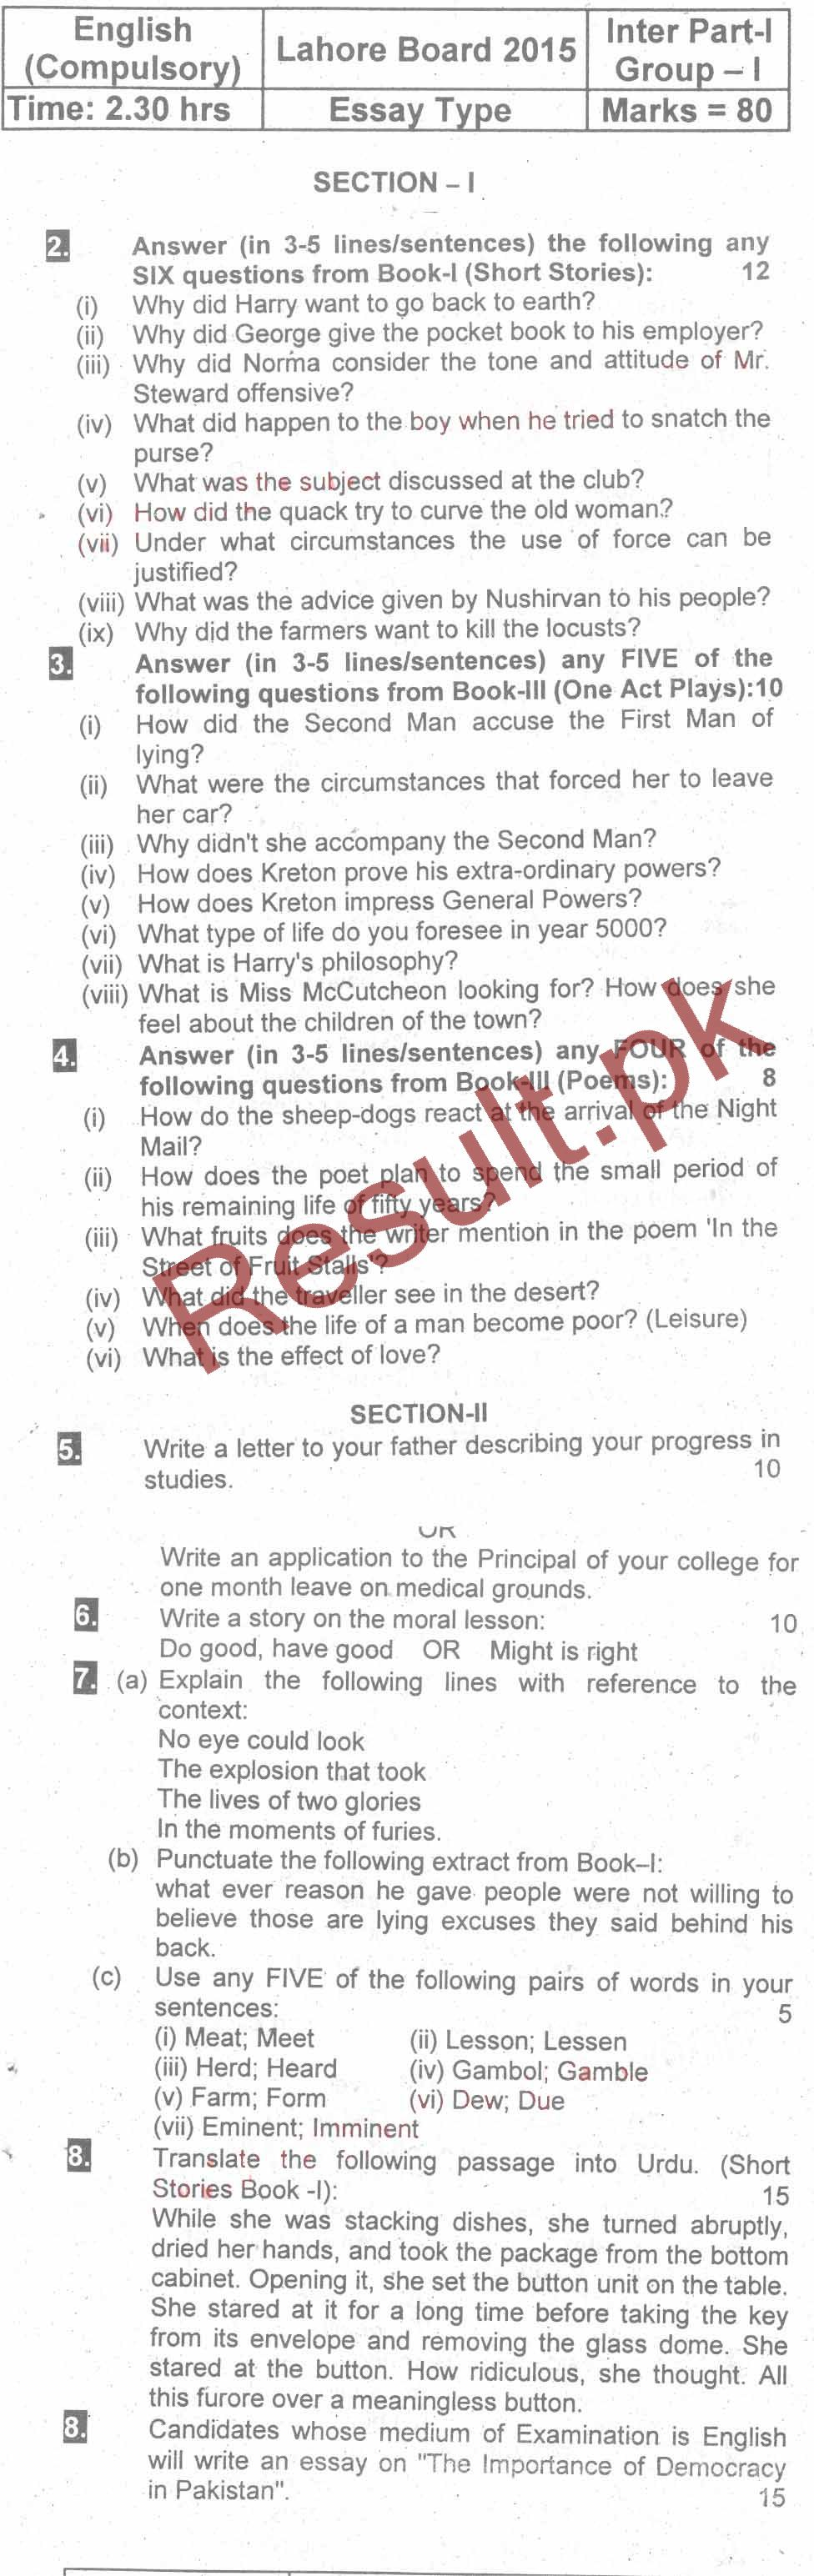 past papers of english intermediate part 1 of lahore board Bise lahore board fa/fsc 12th class model and past papers for pattern preparation pdf/doc organize yourself for the forthcoming inter part 2 exams of lahore board by.